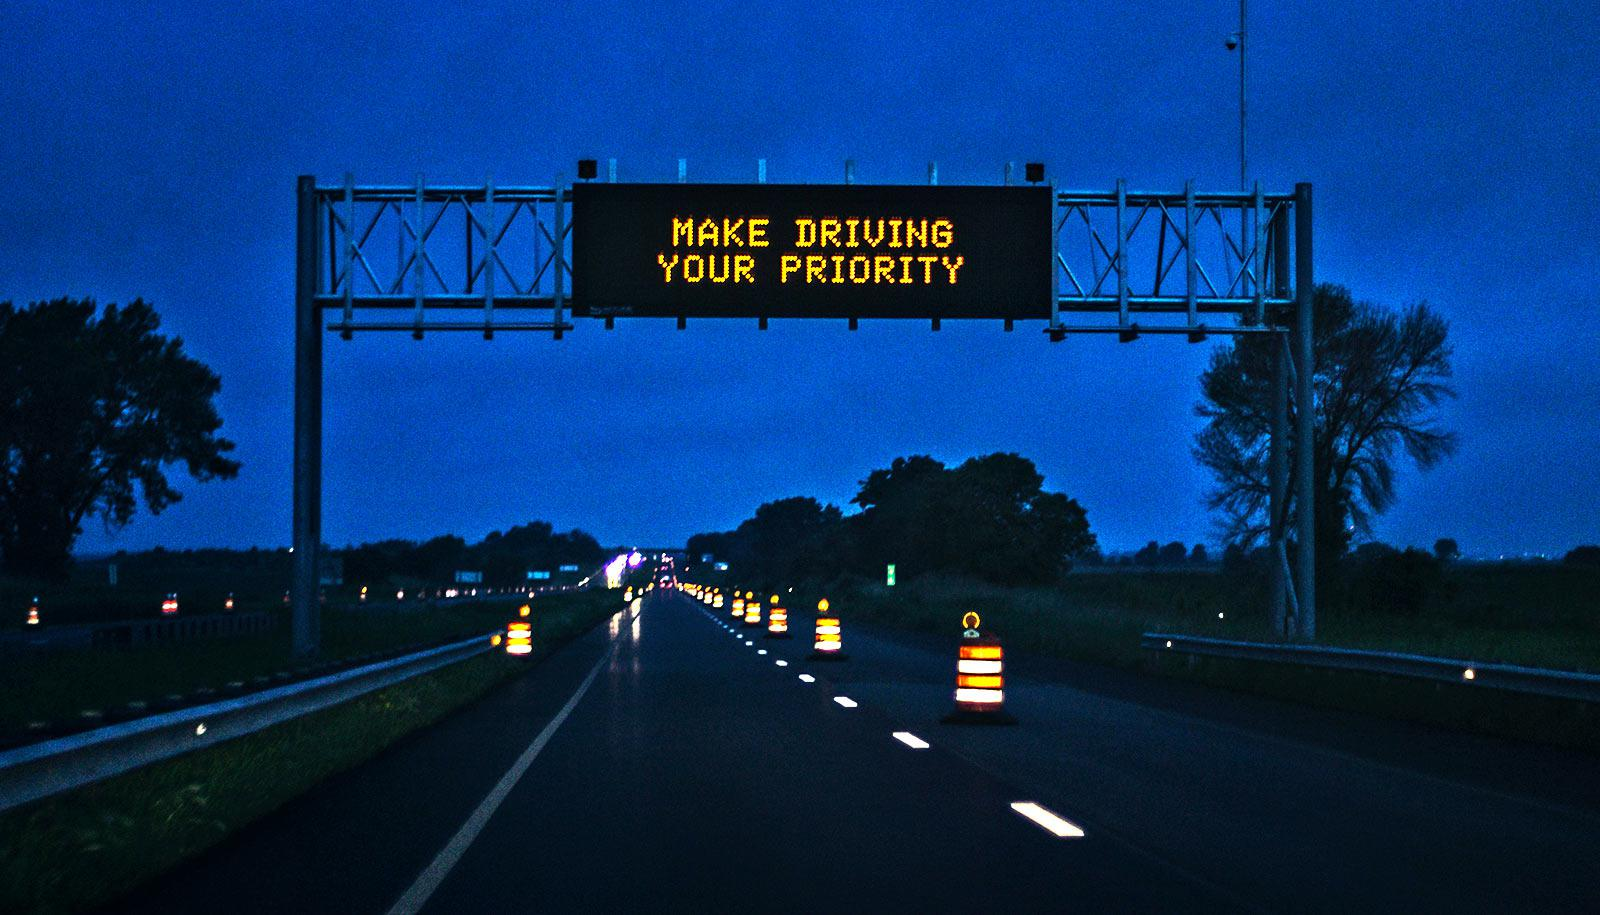 make driving your priority sign